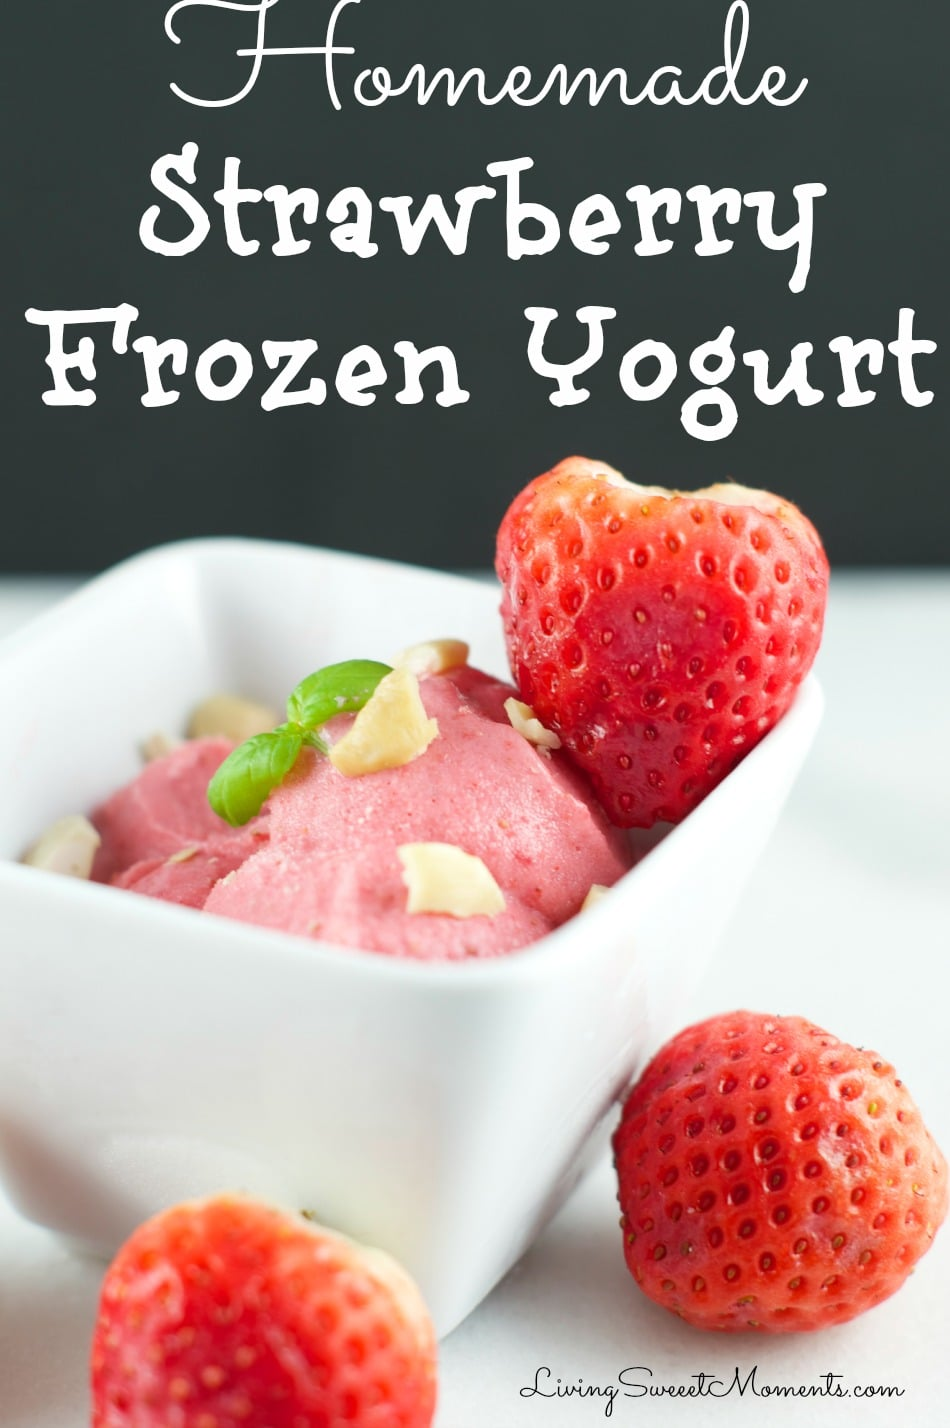 strawberry-frozen-yogurt-recipe-cover